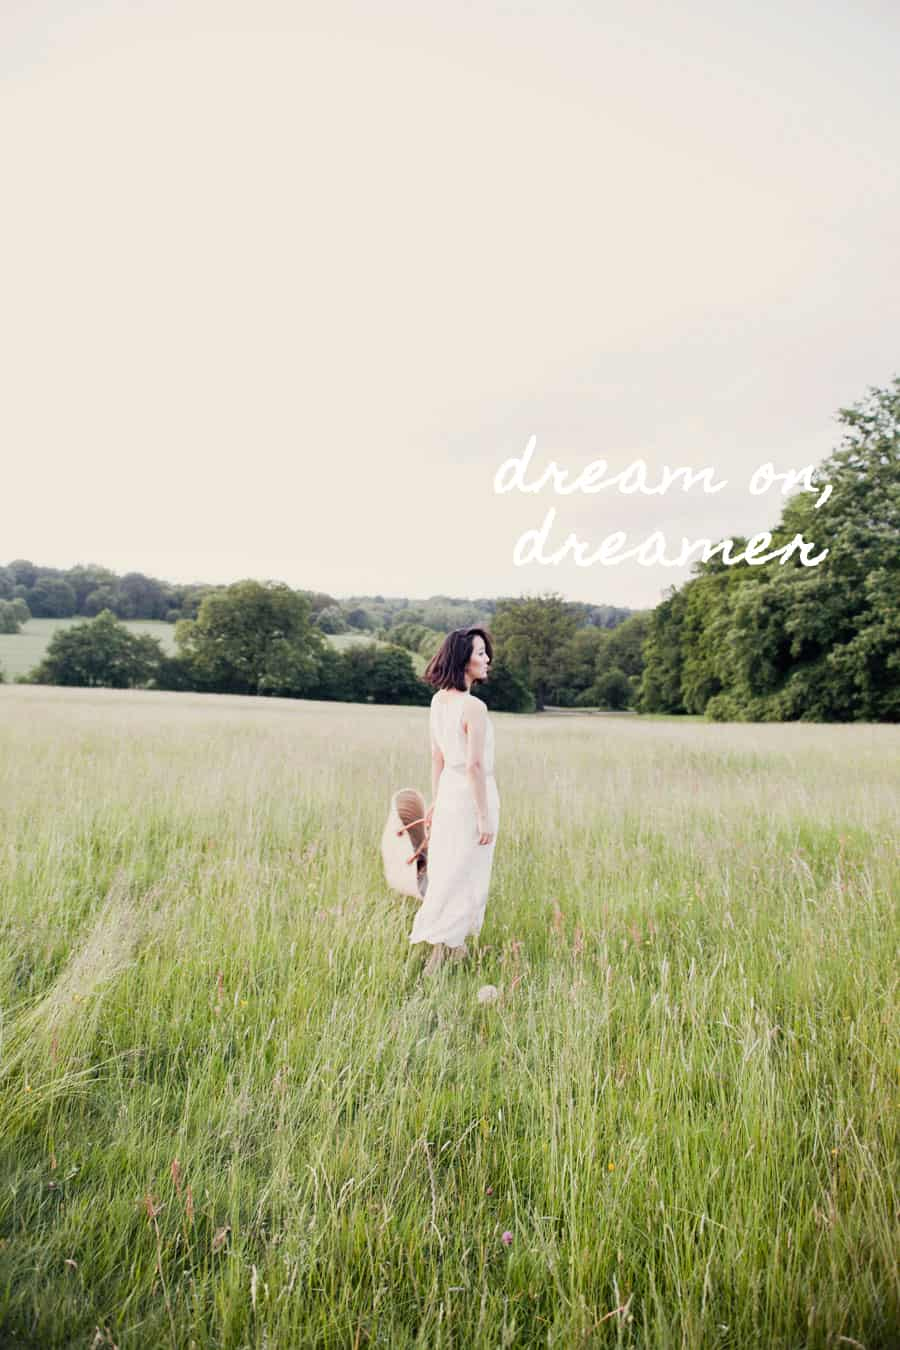 summer field photography dream on dreamer quote